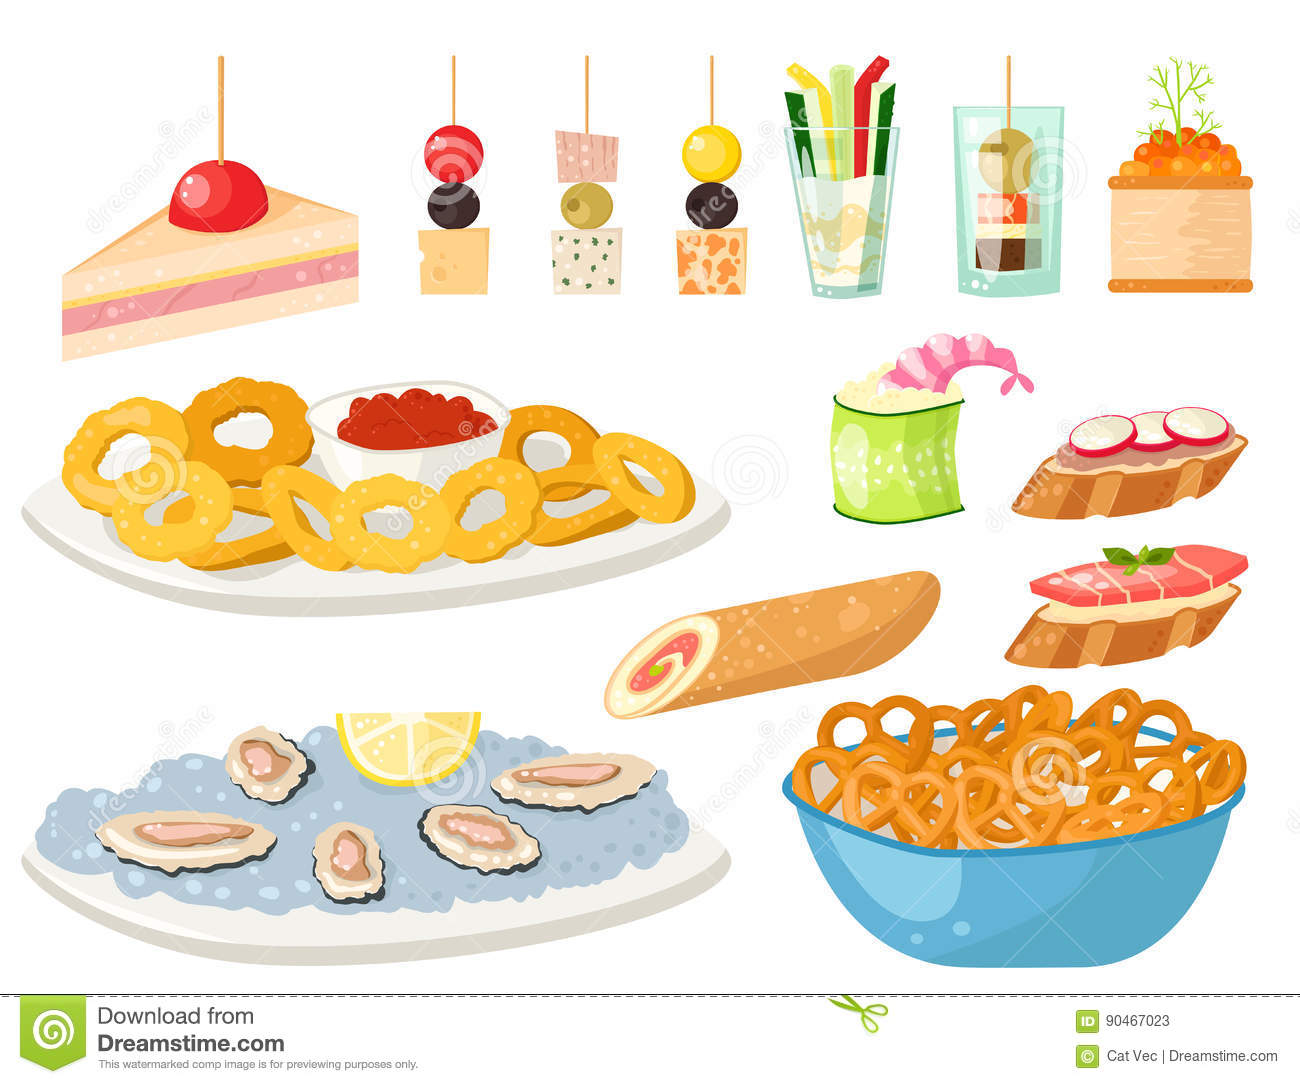 Catering cartoons illustrations vector stock images for Canape vector download